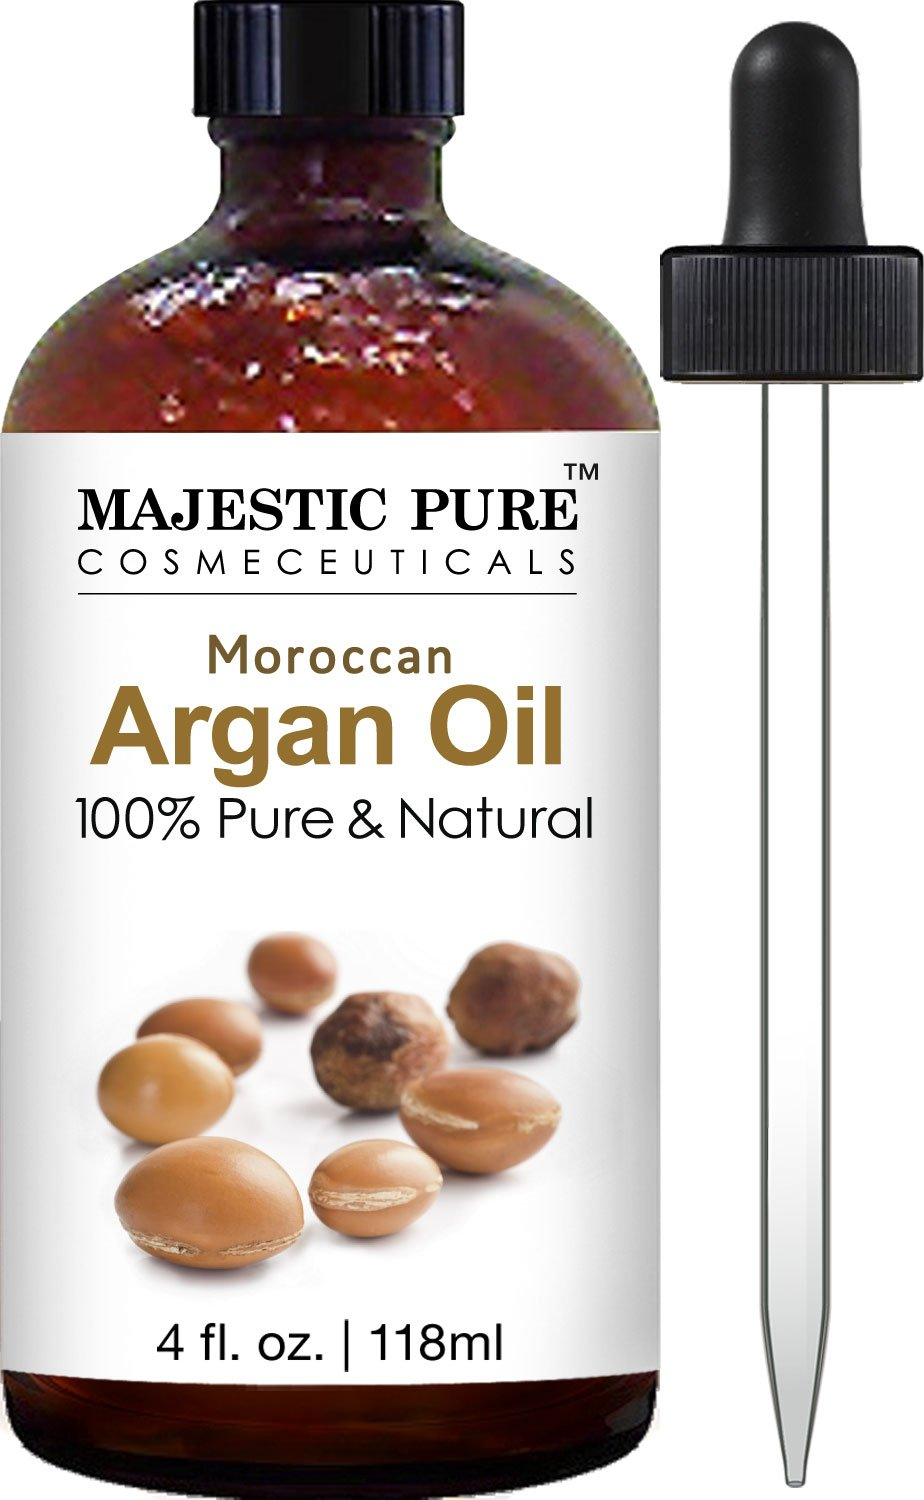 moroccan argan oil, main ingredients, top brand